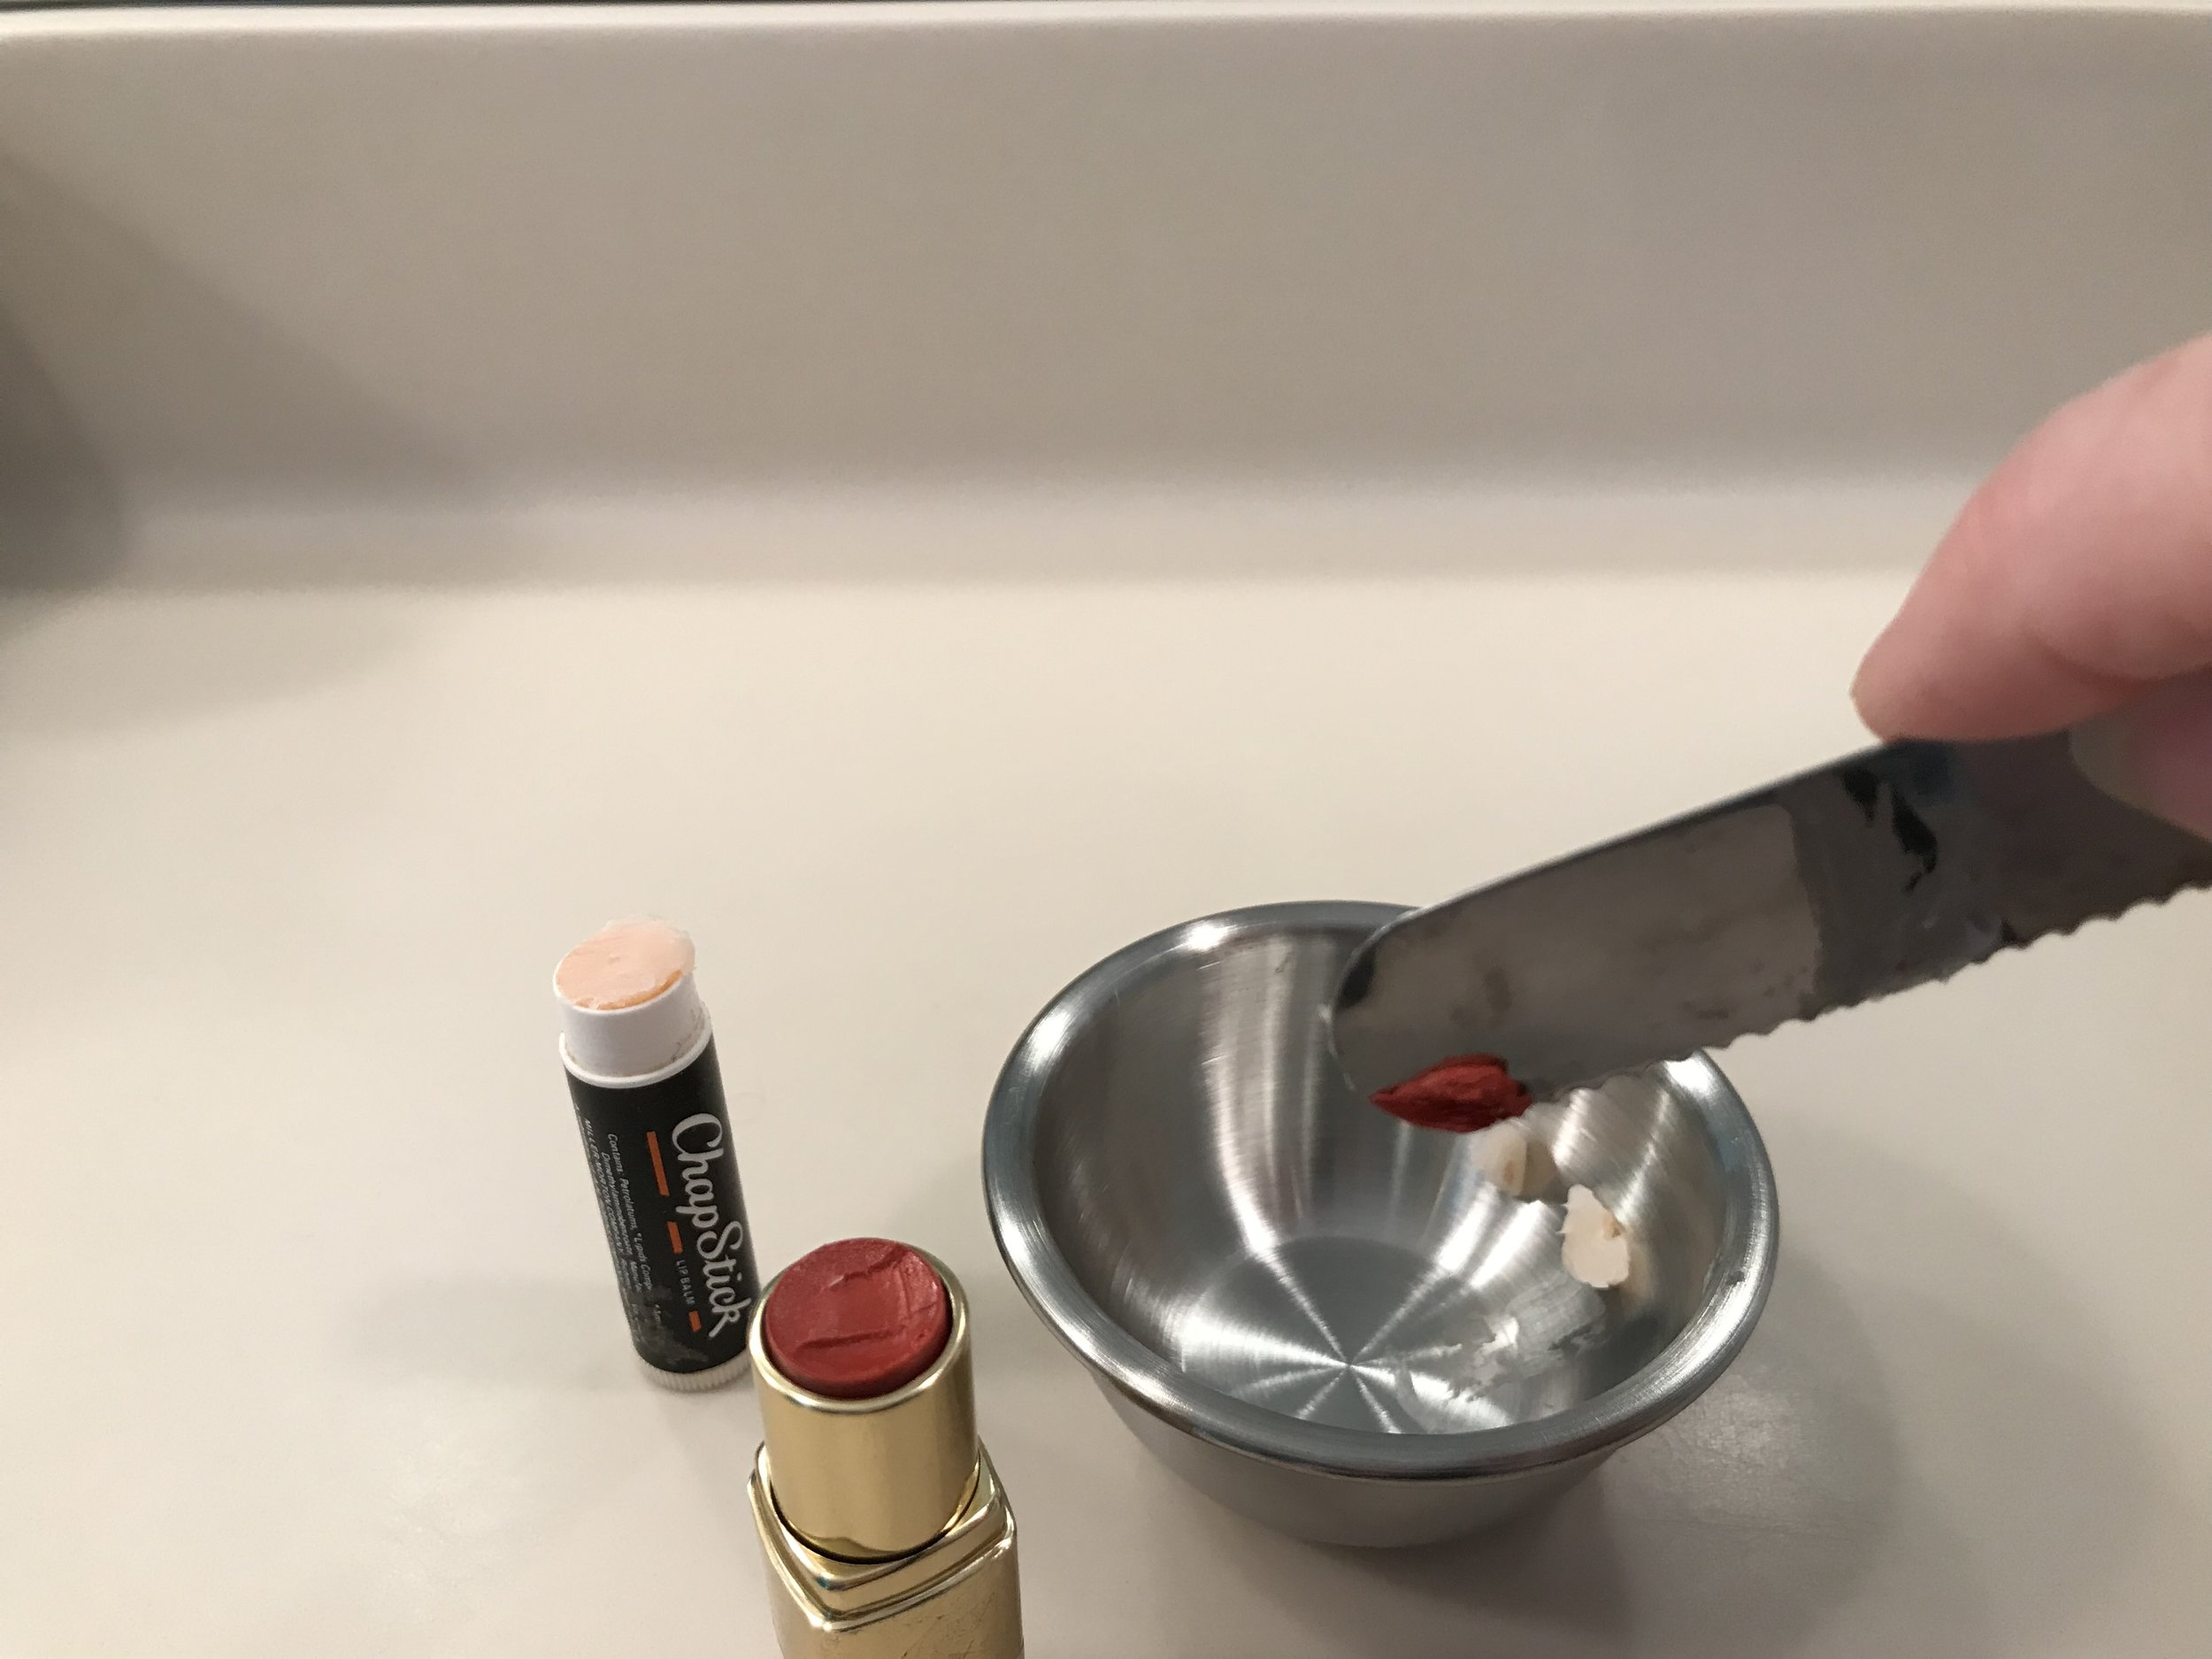 Place both lip balm and lip color in the bowl.